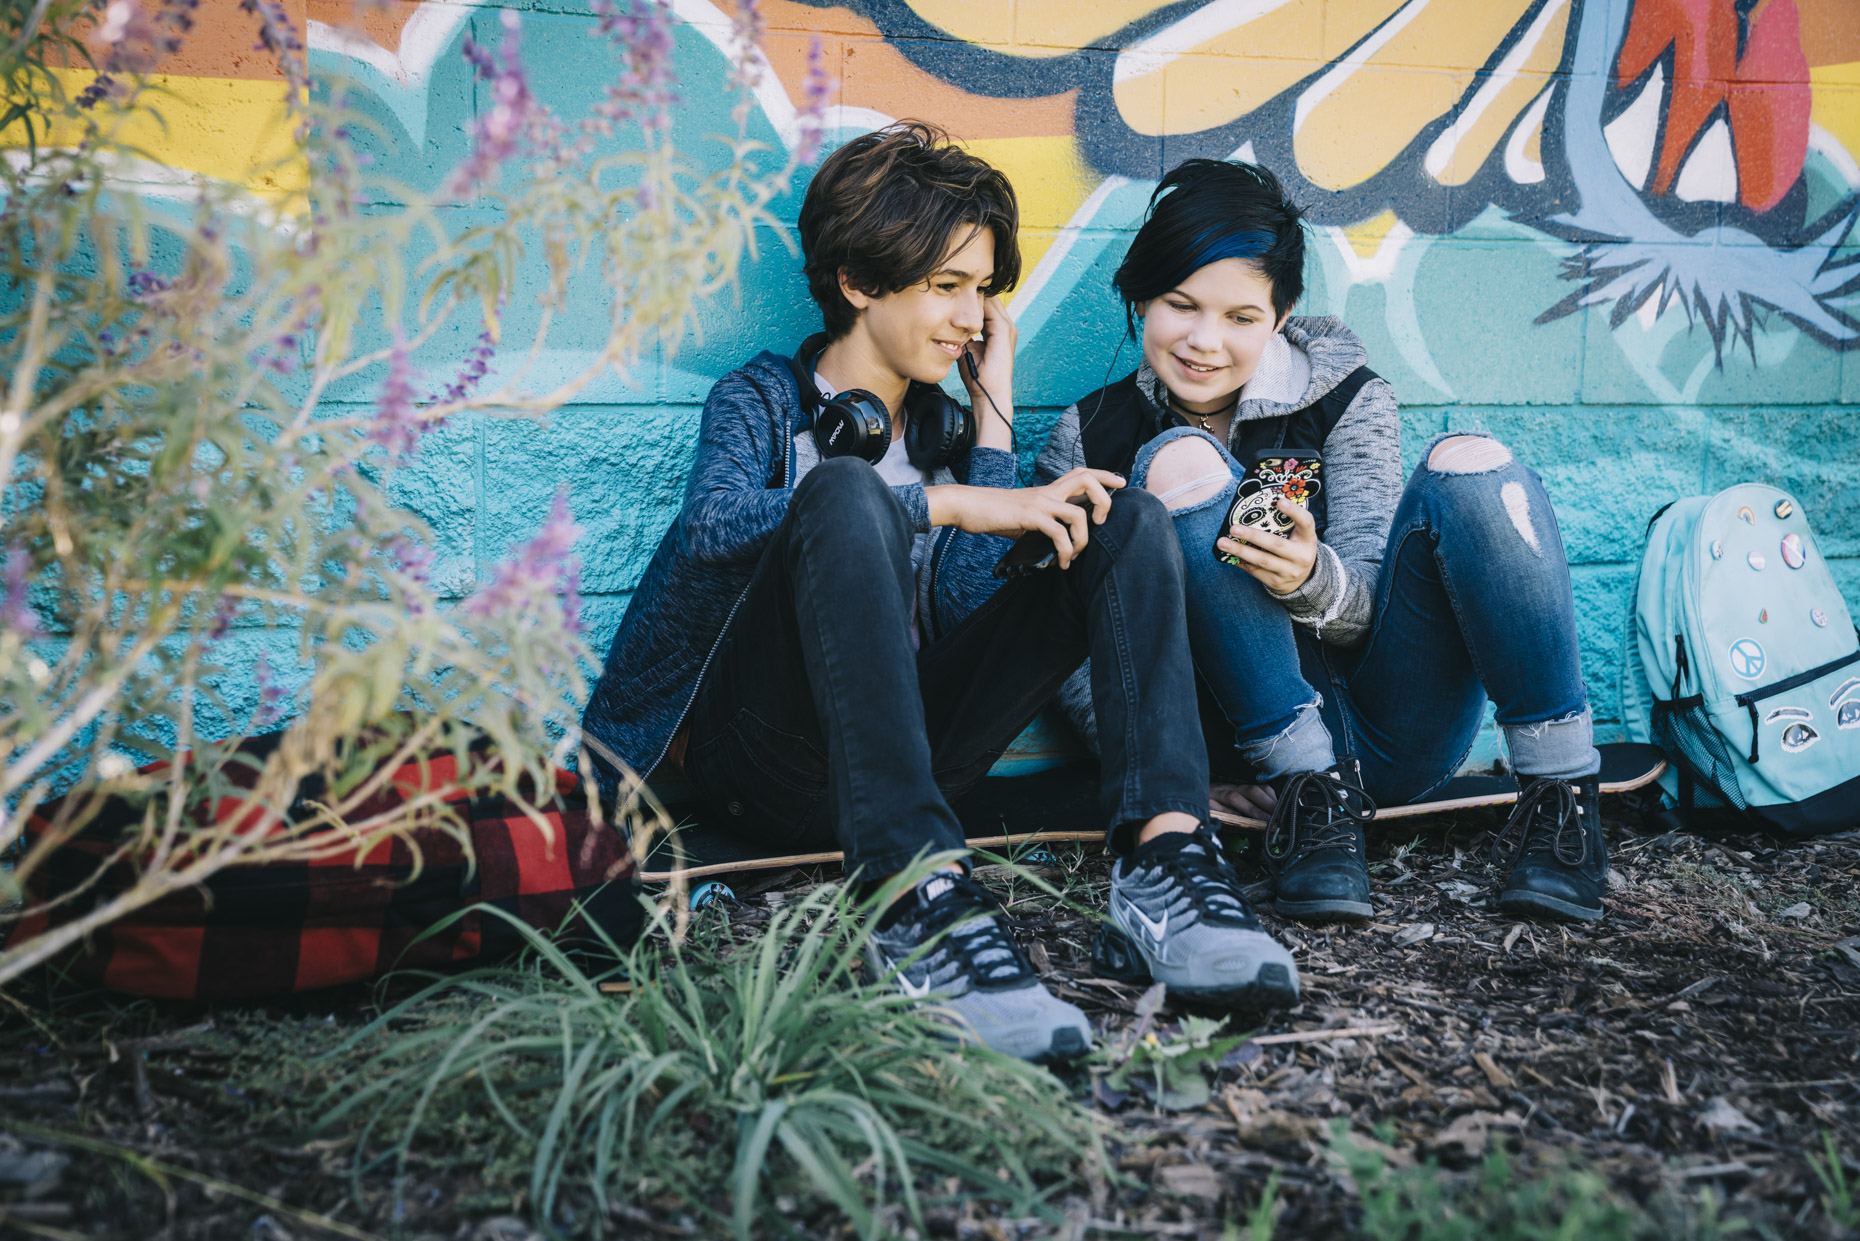 Teens sitting by grafitti wall watching video on phone together